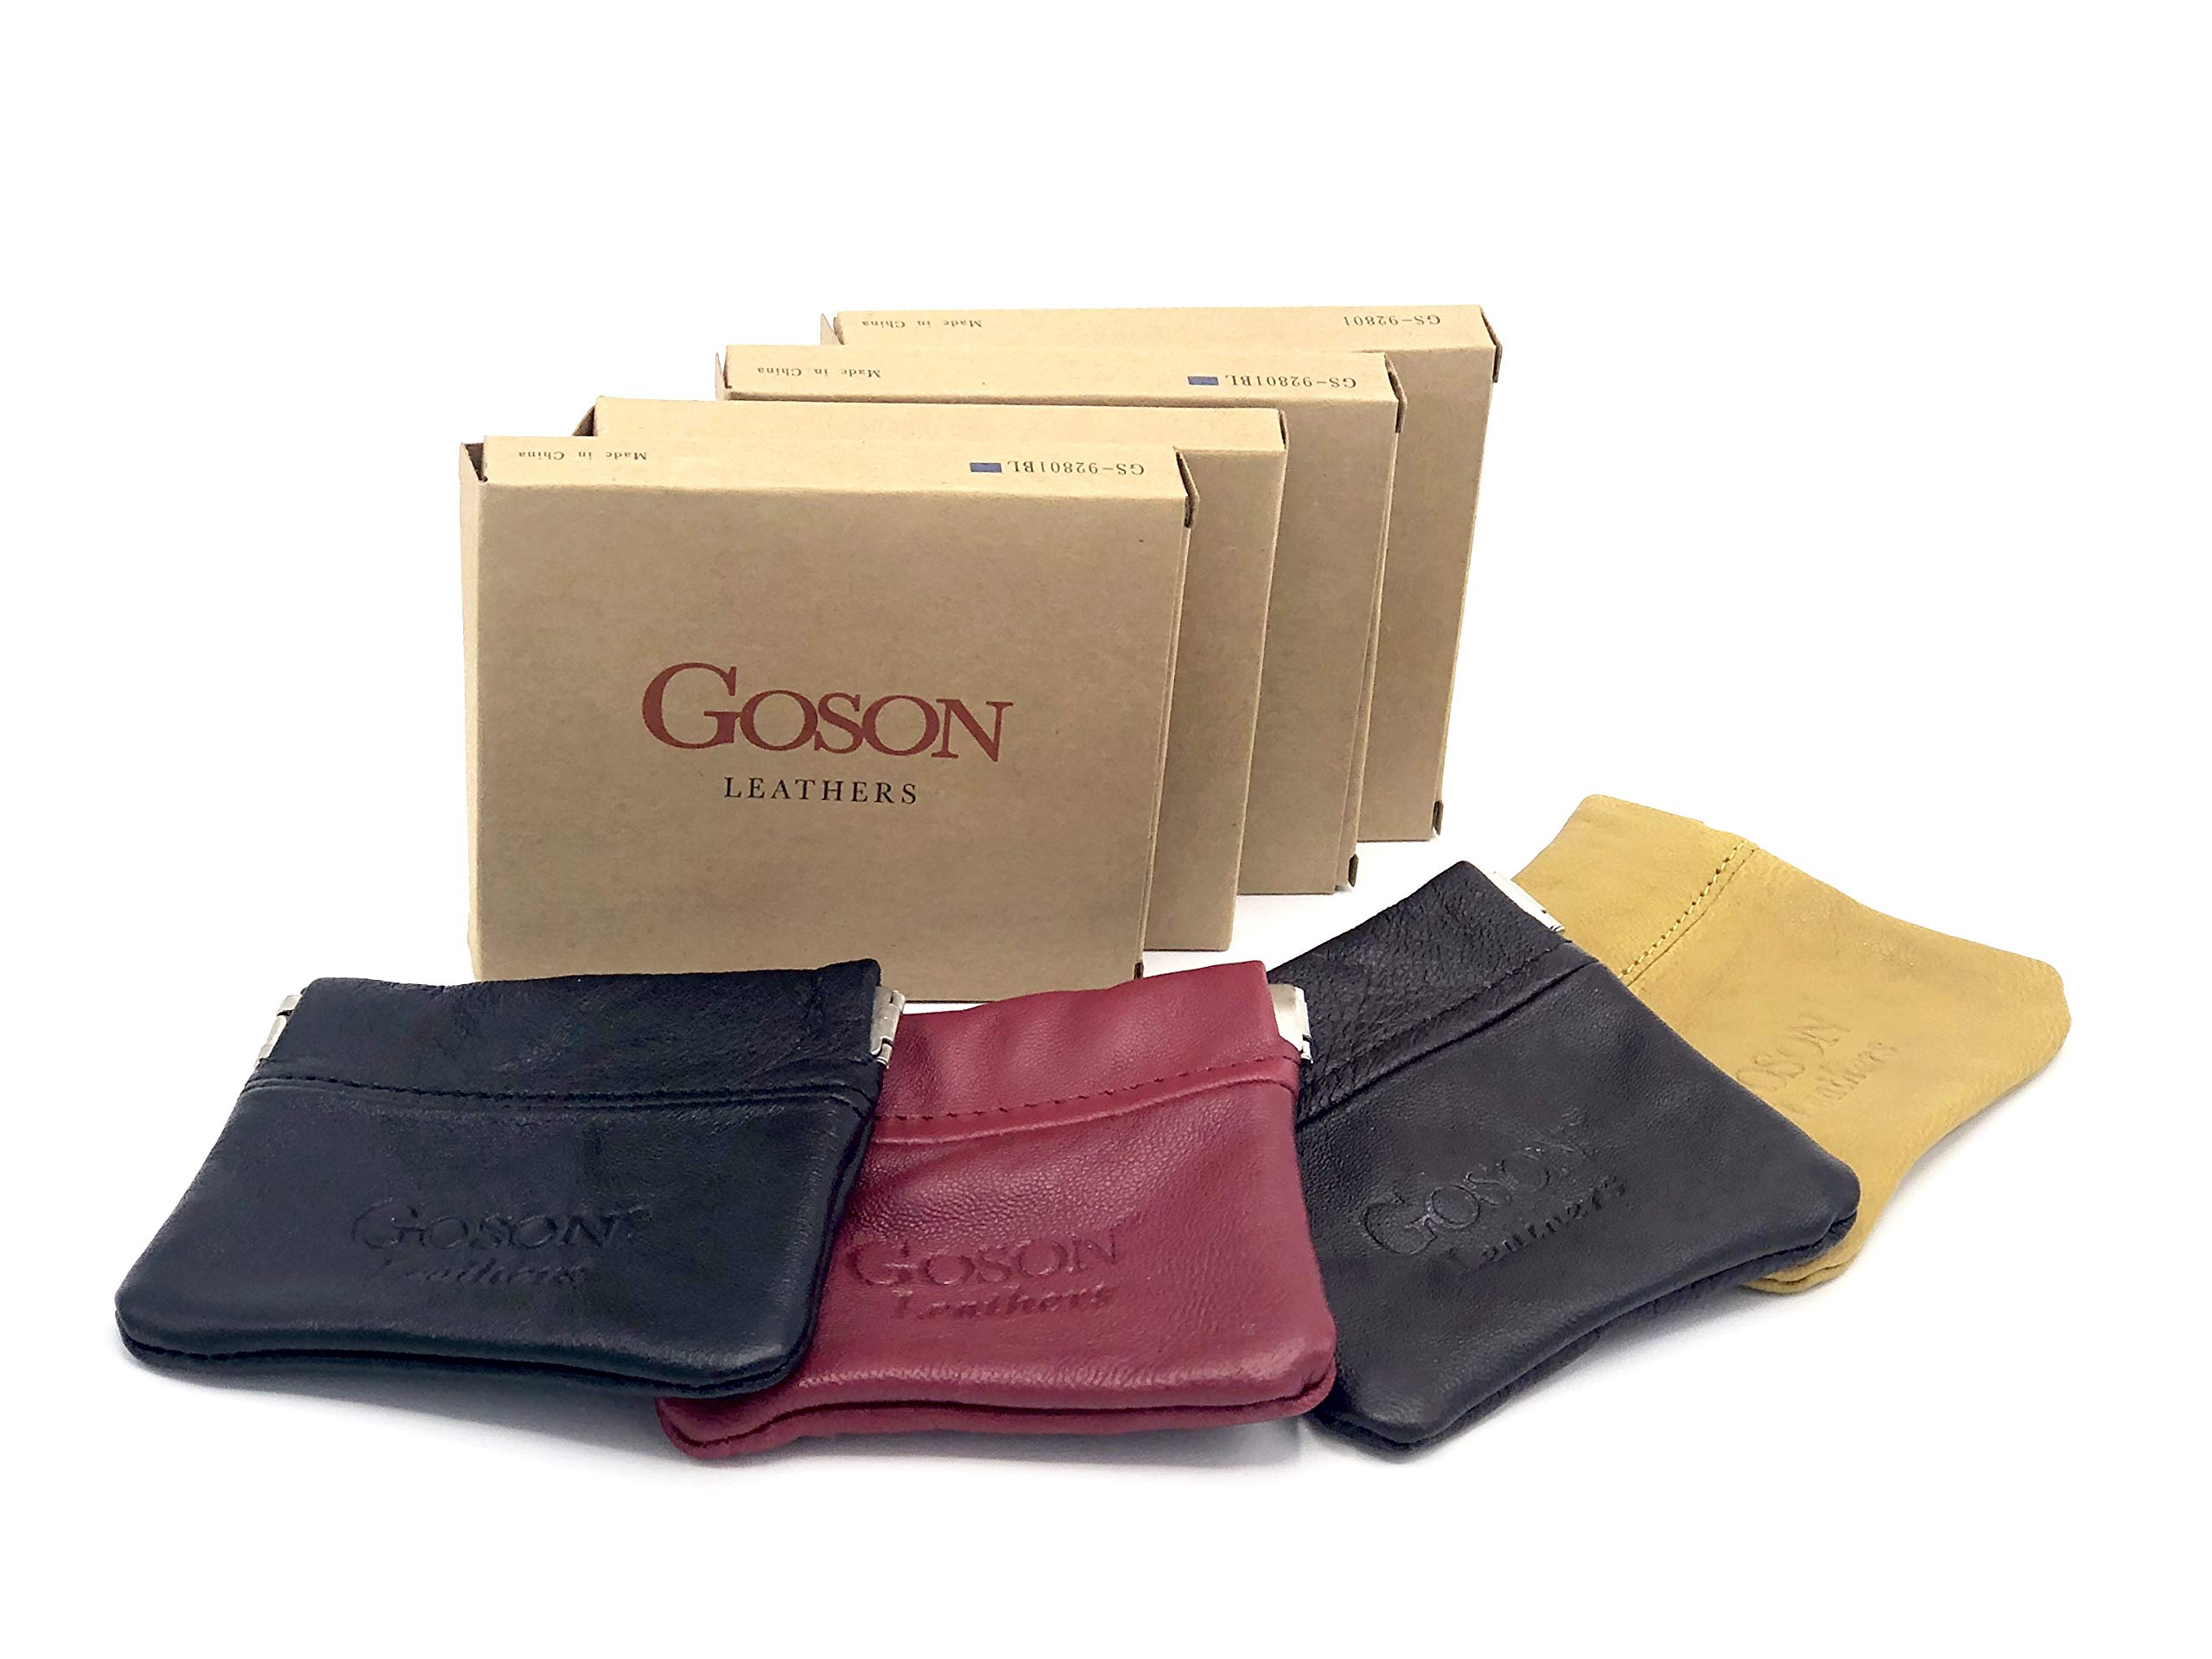 Goson Classic Leather Squeeze Coin Purse change Holder For Men and Women, Pouch size 3.25 in X 3.25 in (4 Pack - Black, Red, Brown, Yellow) by Goson